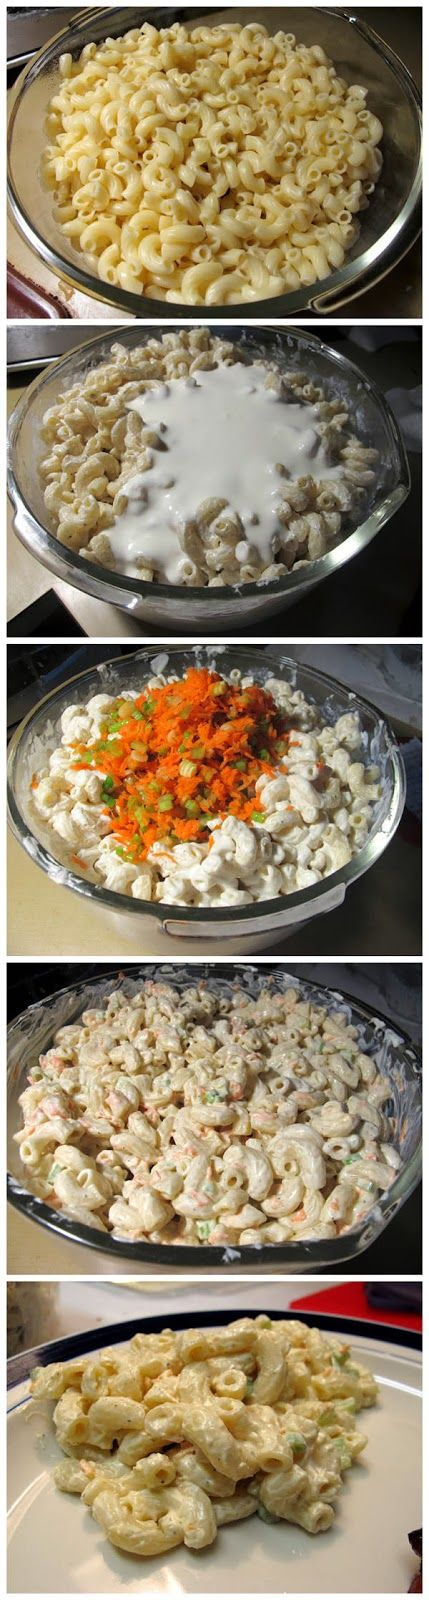 Red Sky Food: Hawaiian Macaroni Salad